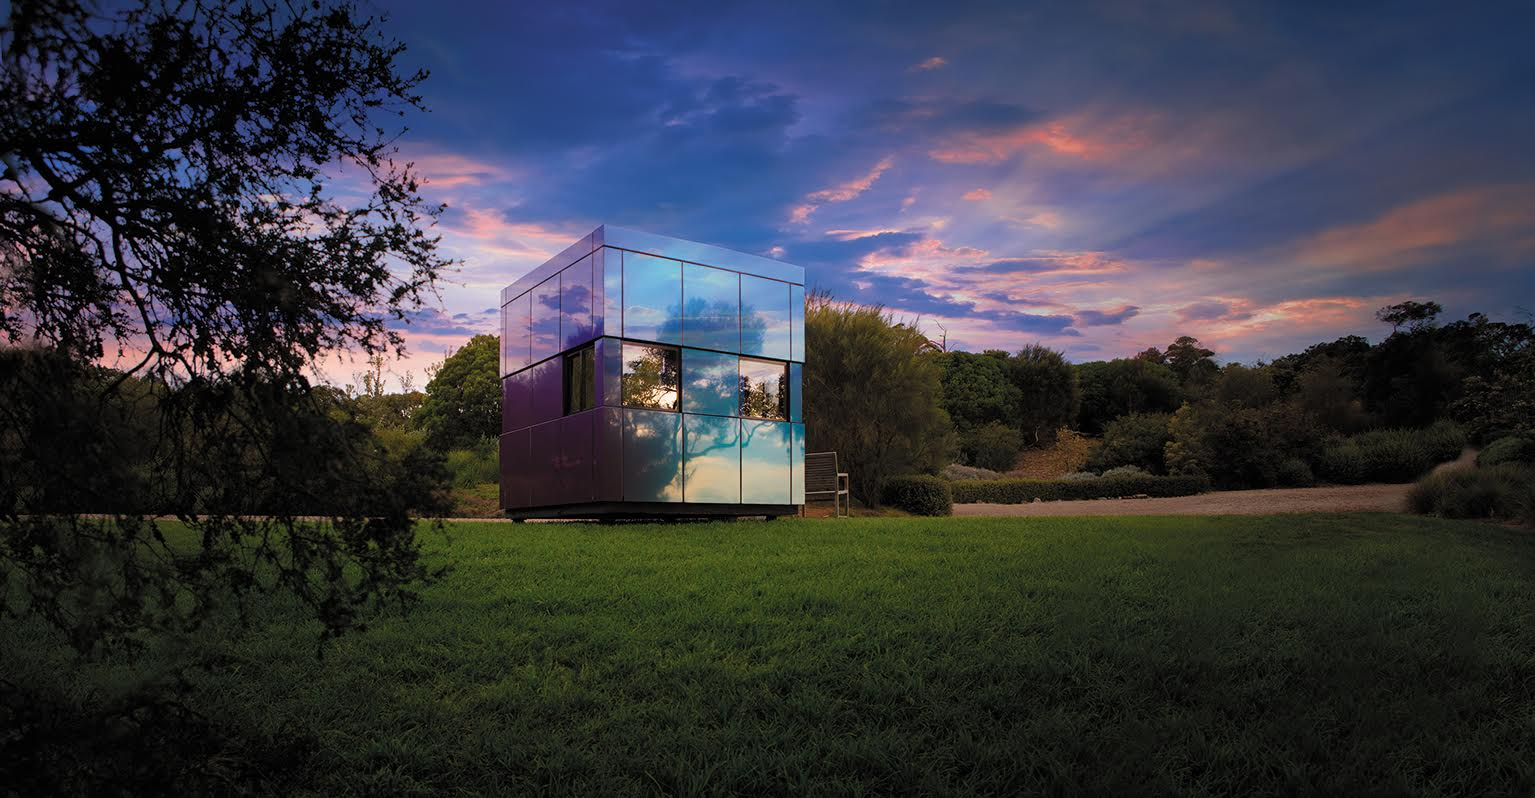 Harwyn Pods, clad in Spectra colors of Alucobond reflecting the trees and sky. Source:Harwyn